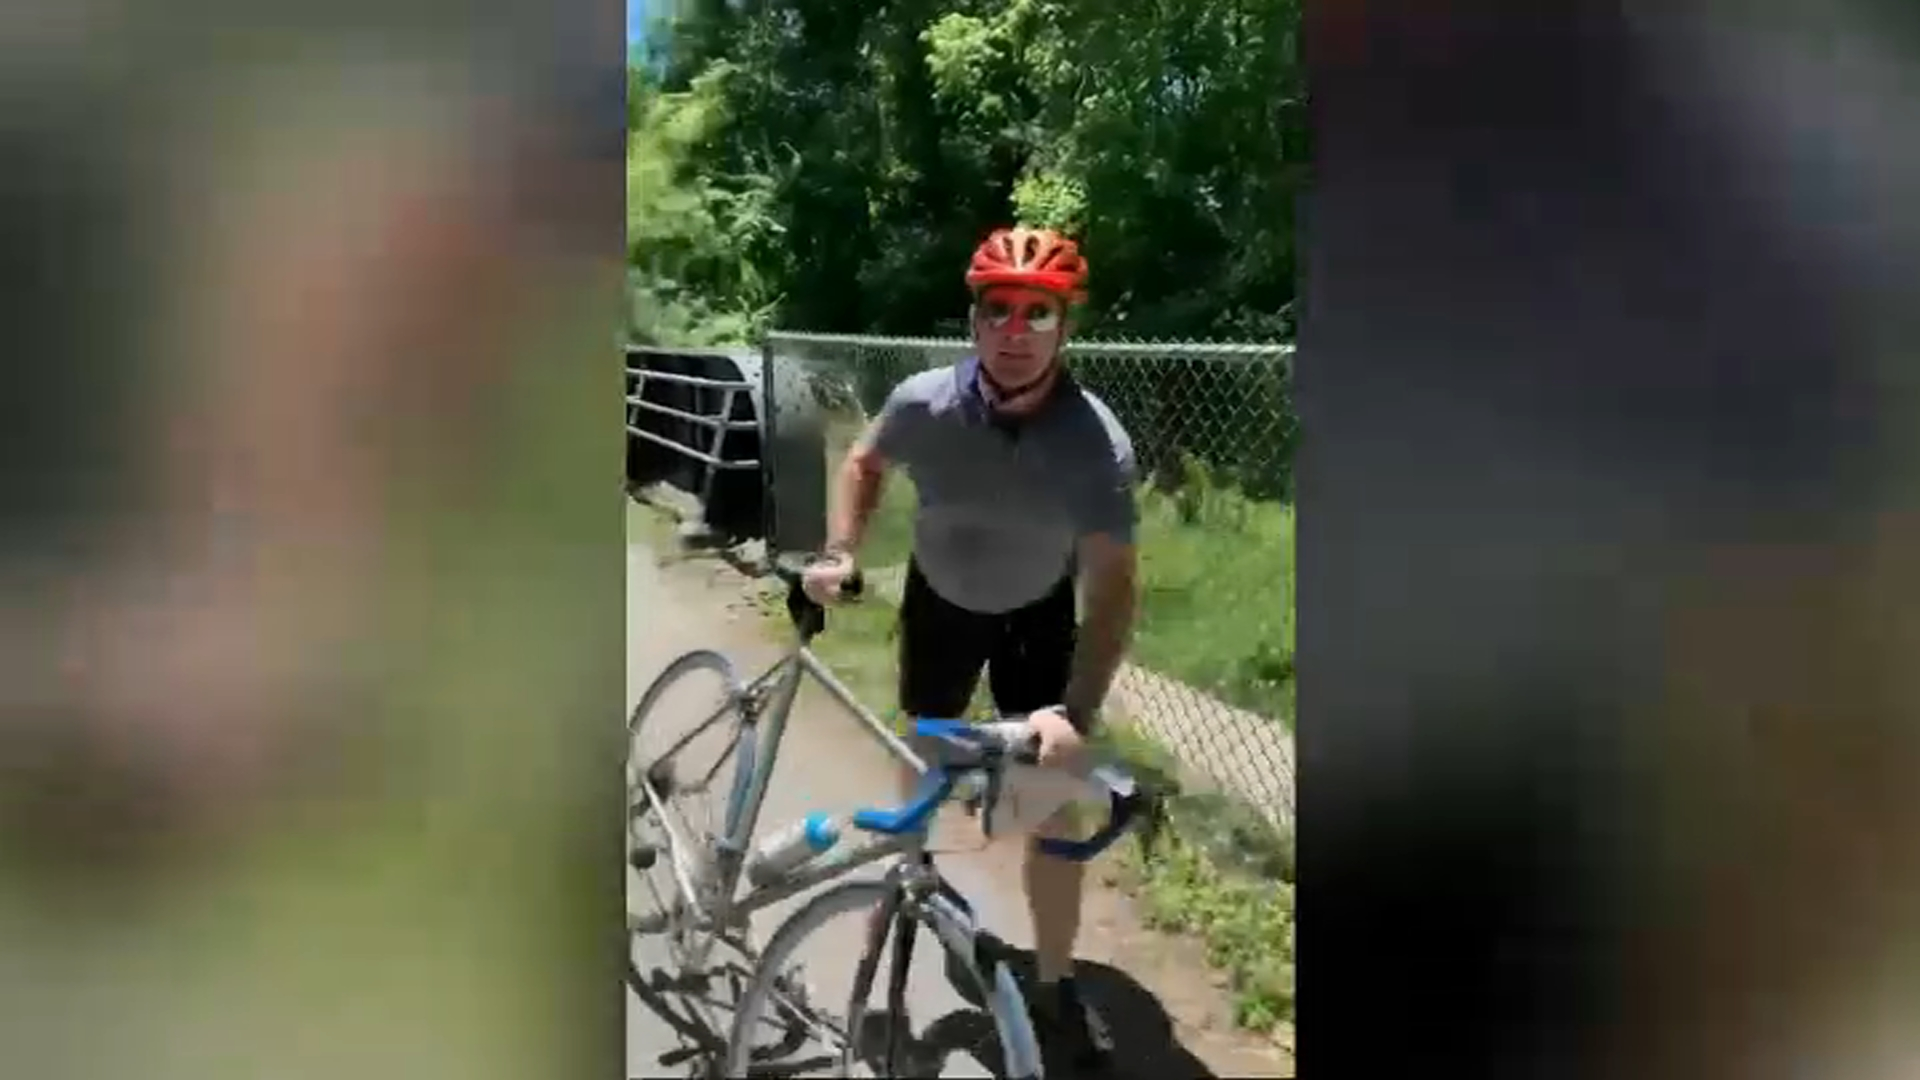 Police Have 'Strong Suspect' in Assault by Cyclist Over Racial Justice Flyers